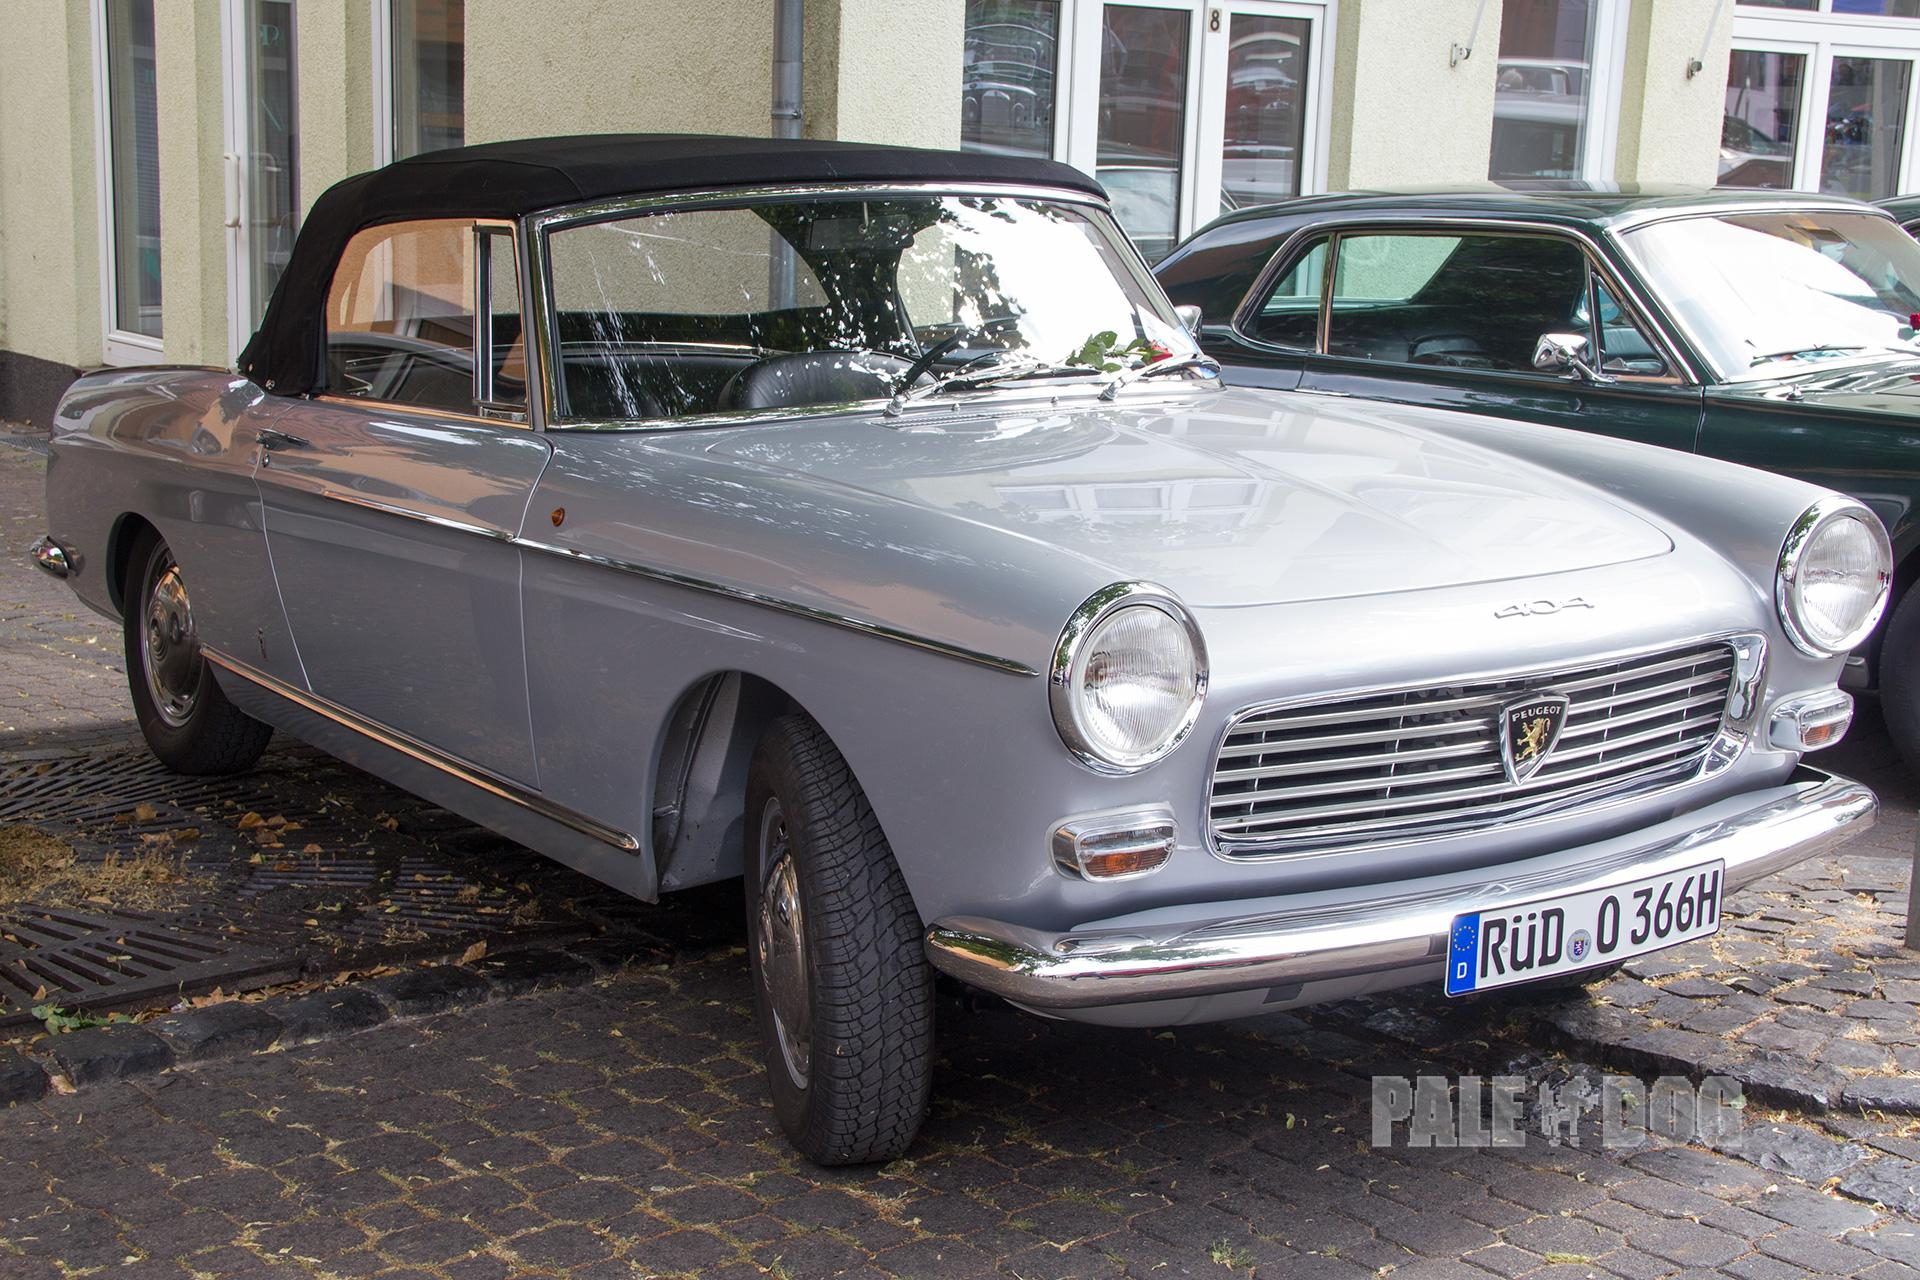 1966 Peugeot 404 Cabriolet Front View 1960s Paledog Photo Collection